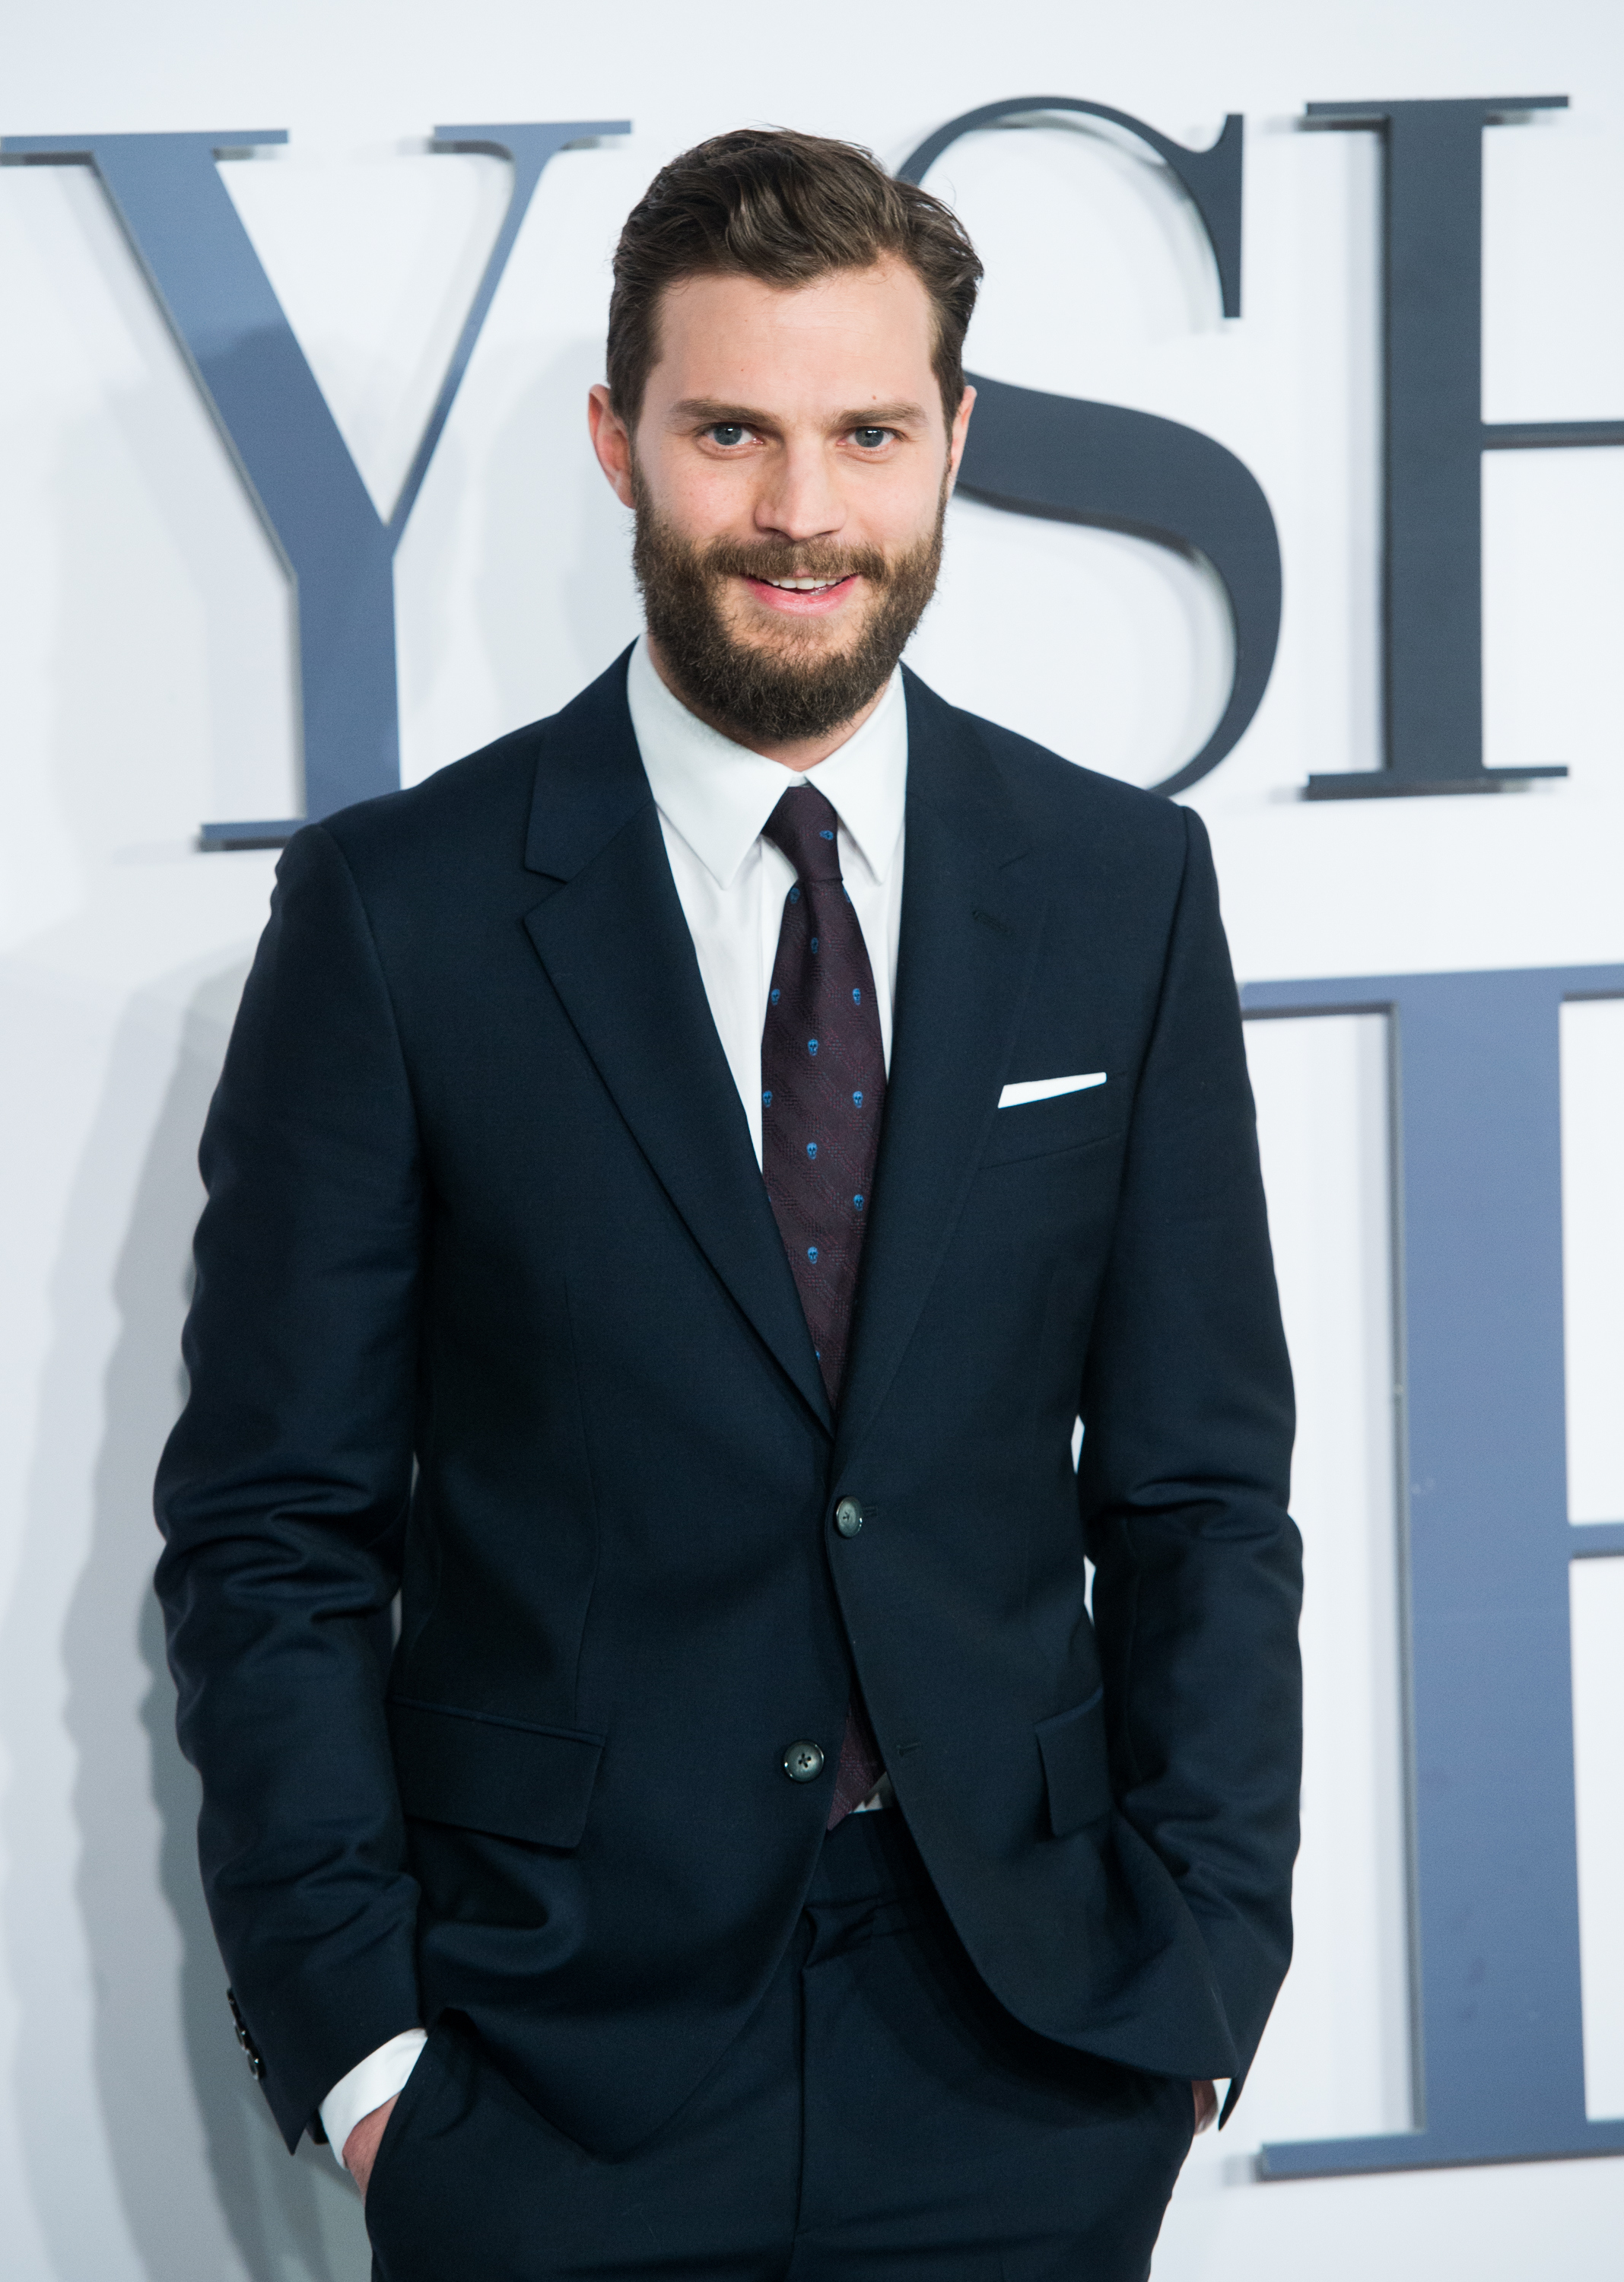 Jamie Dornan attends the UK Premiere of  Fifty Shades Of Grey  at Odeon Leicester Square on Feb 12, 2015 in London.